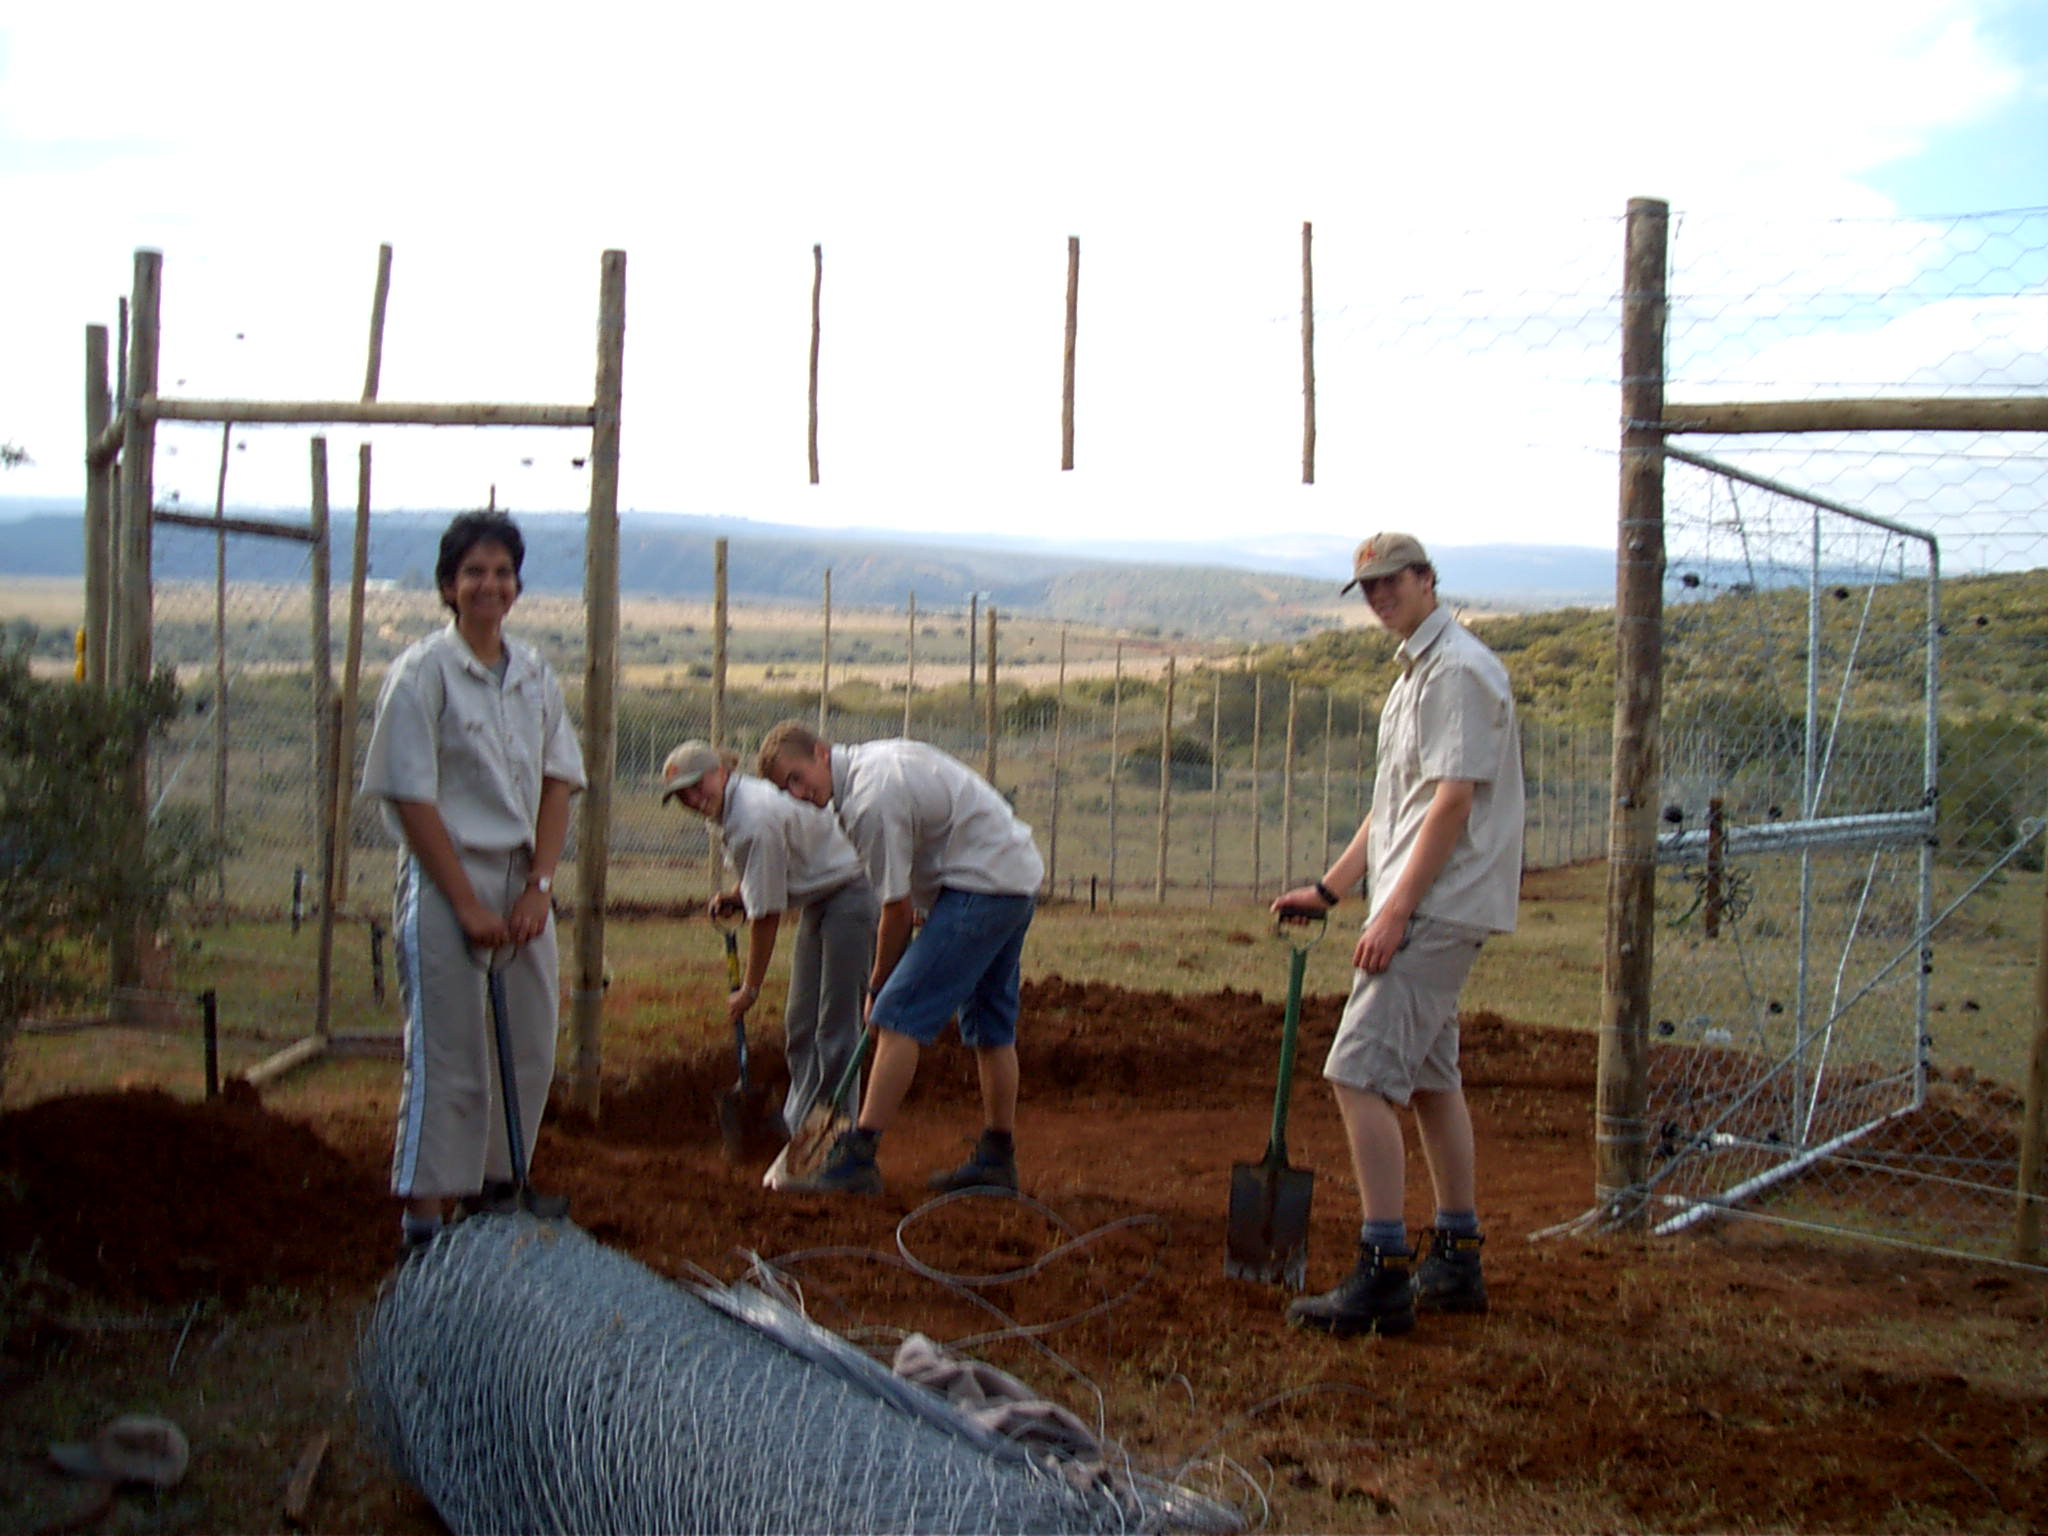 volunteers working hard, digging a boma for the hoedspruit endangered species centre